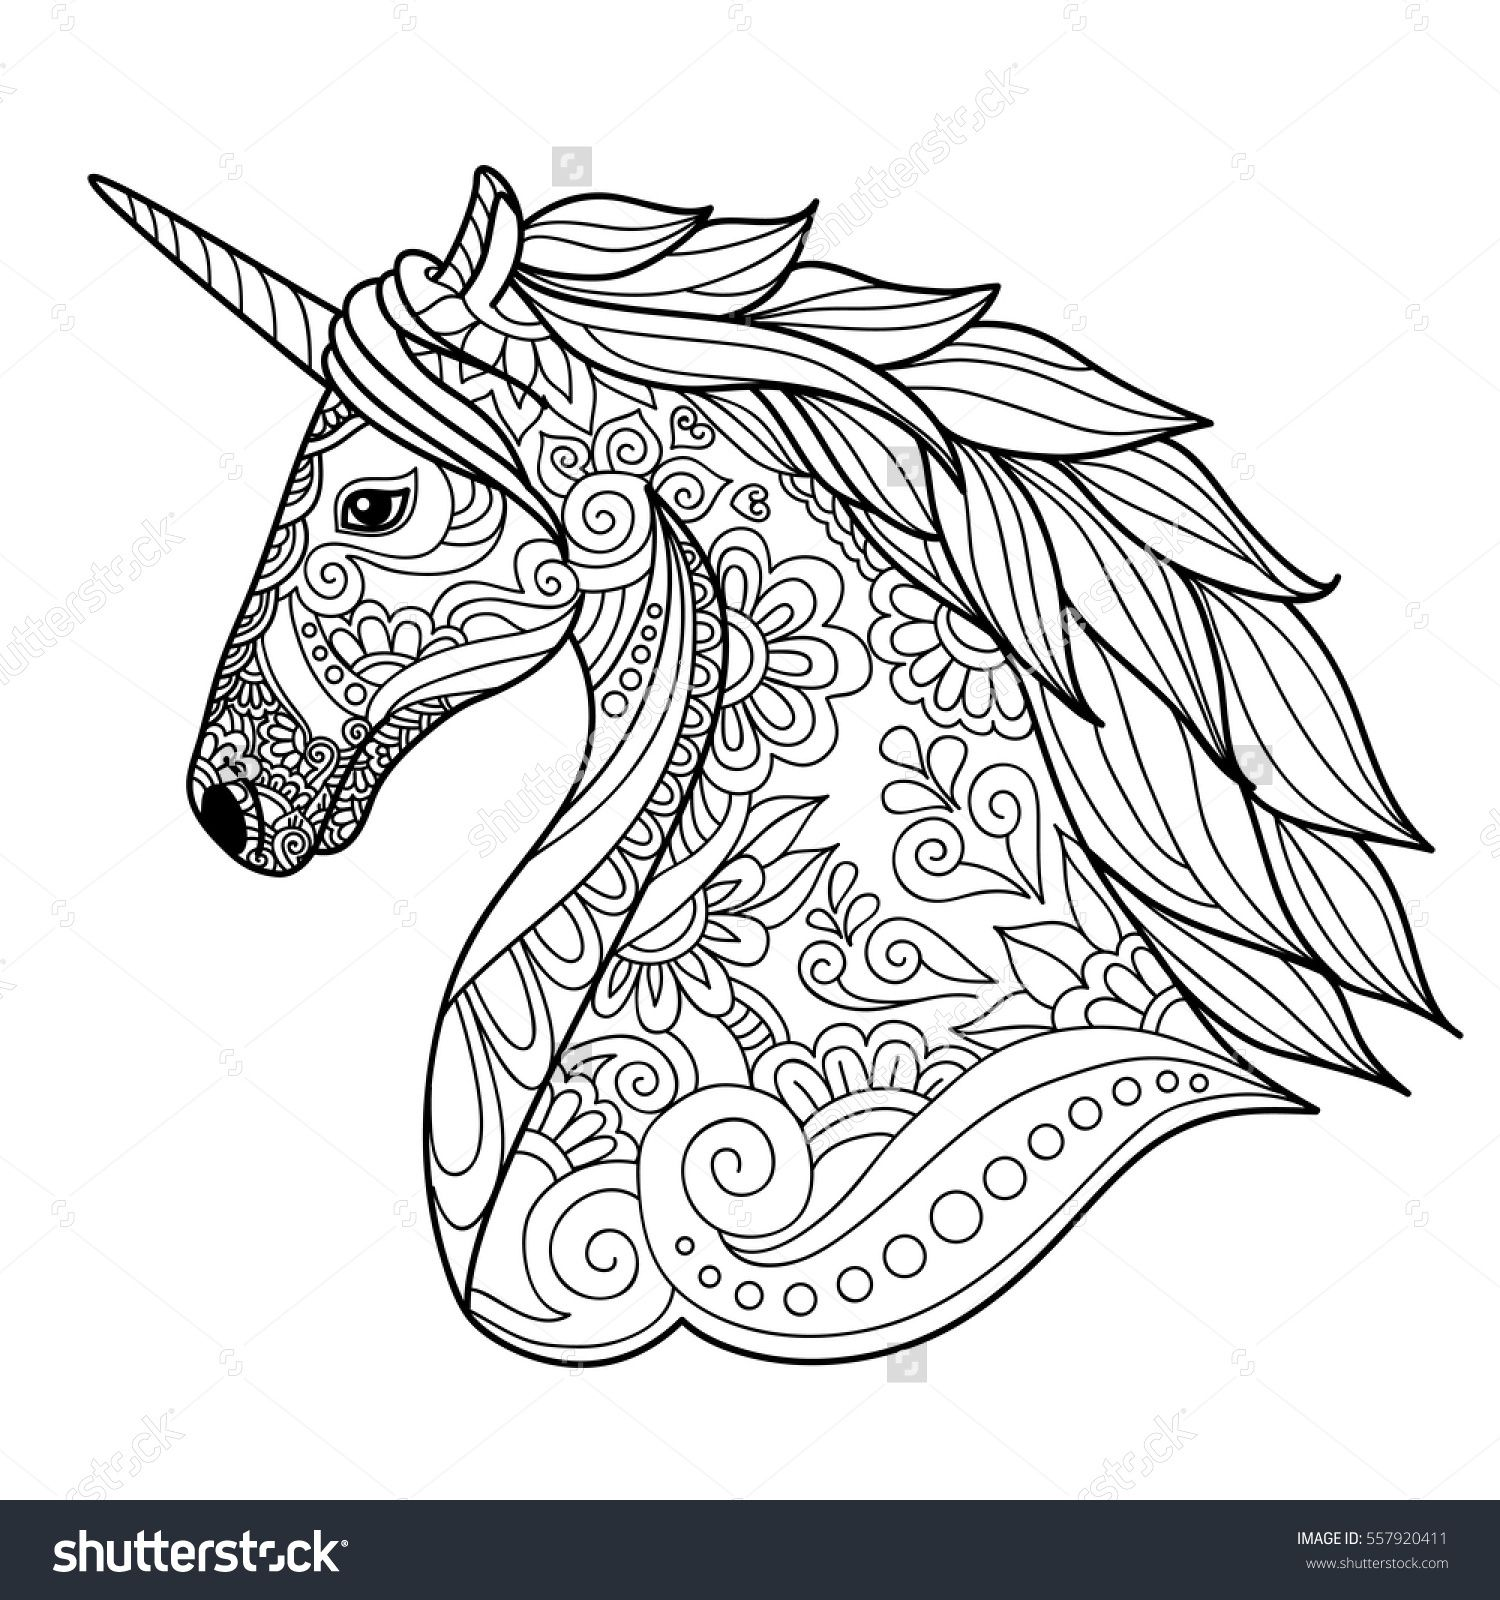 Colouring Imageshutterstock Z Stock Vector